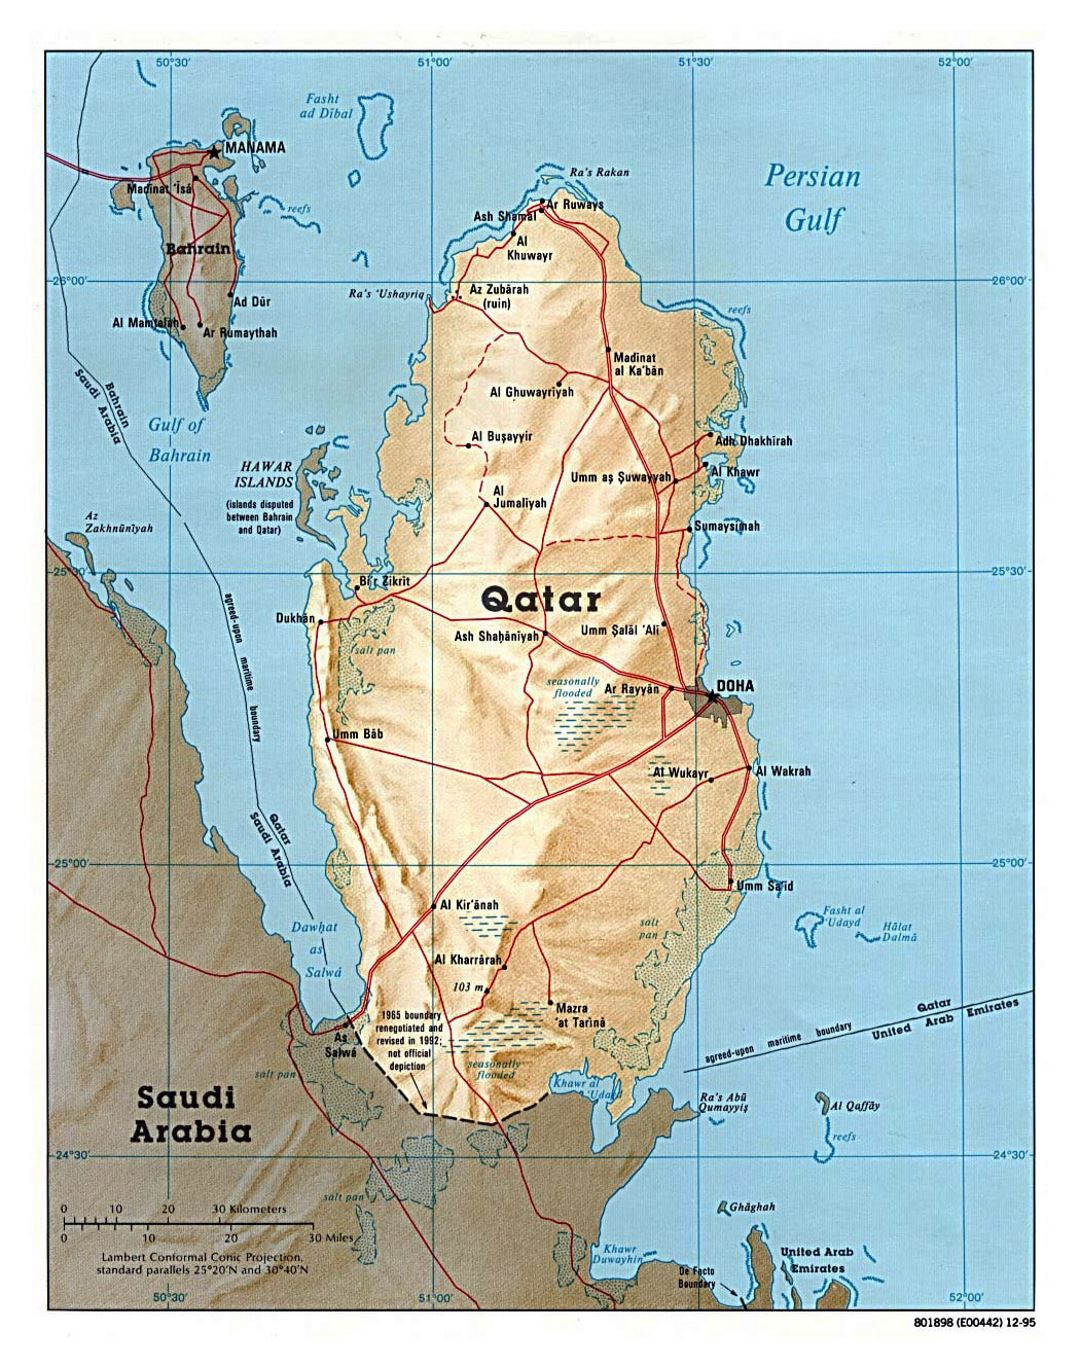 Detailed political map of Qatar with relief, roads and cities - 1995